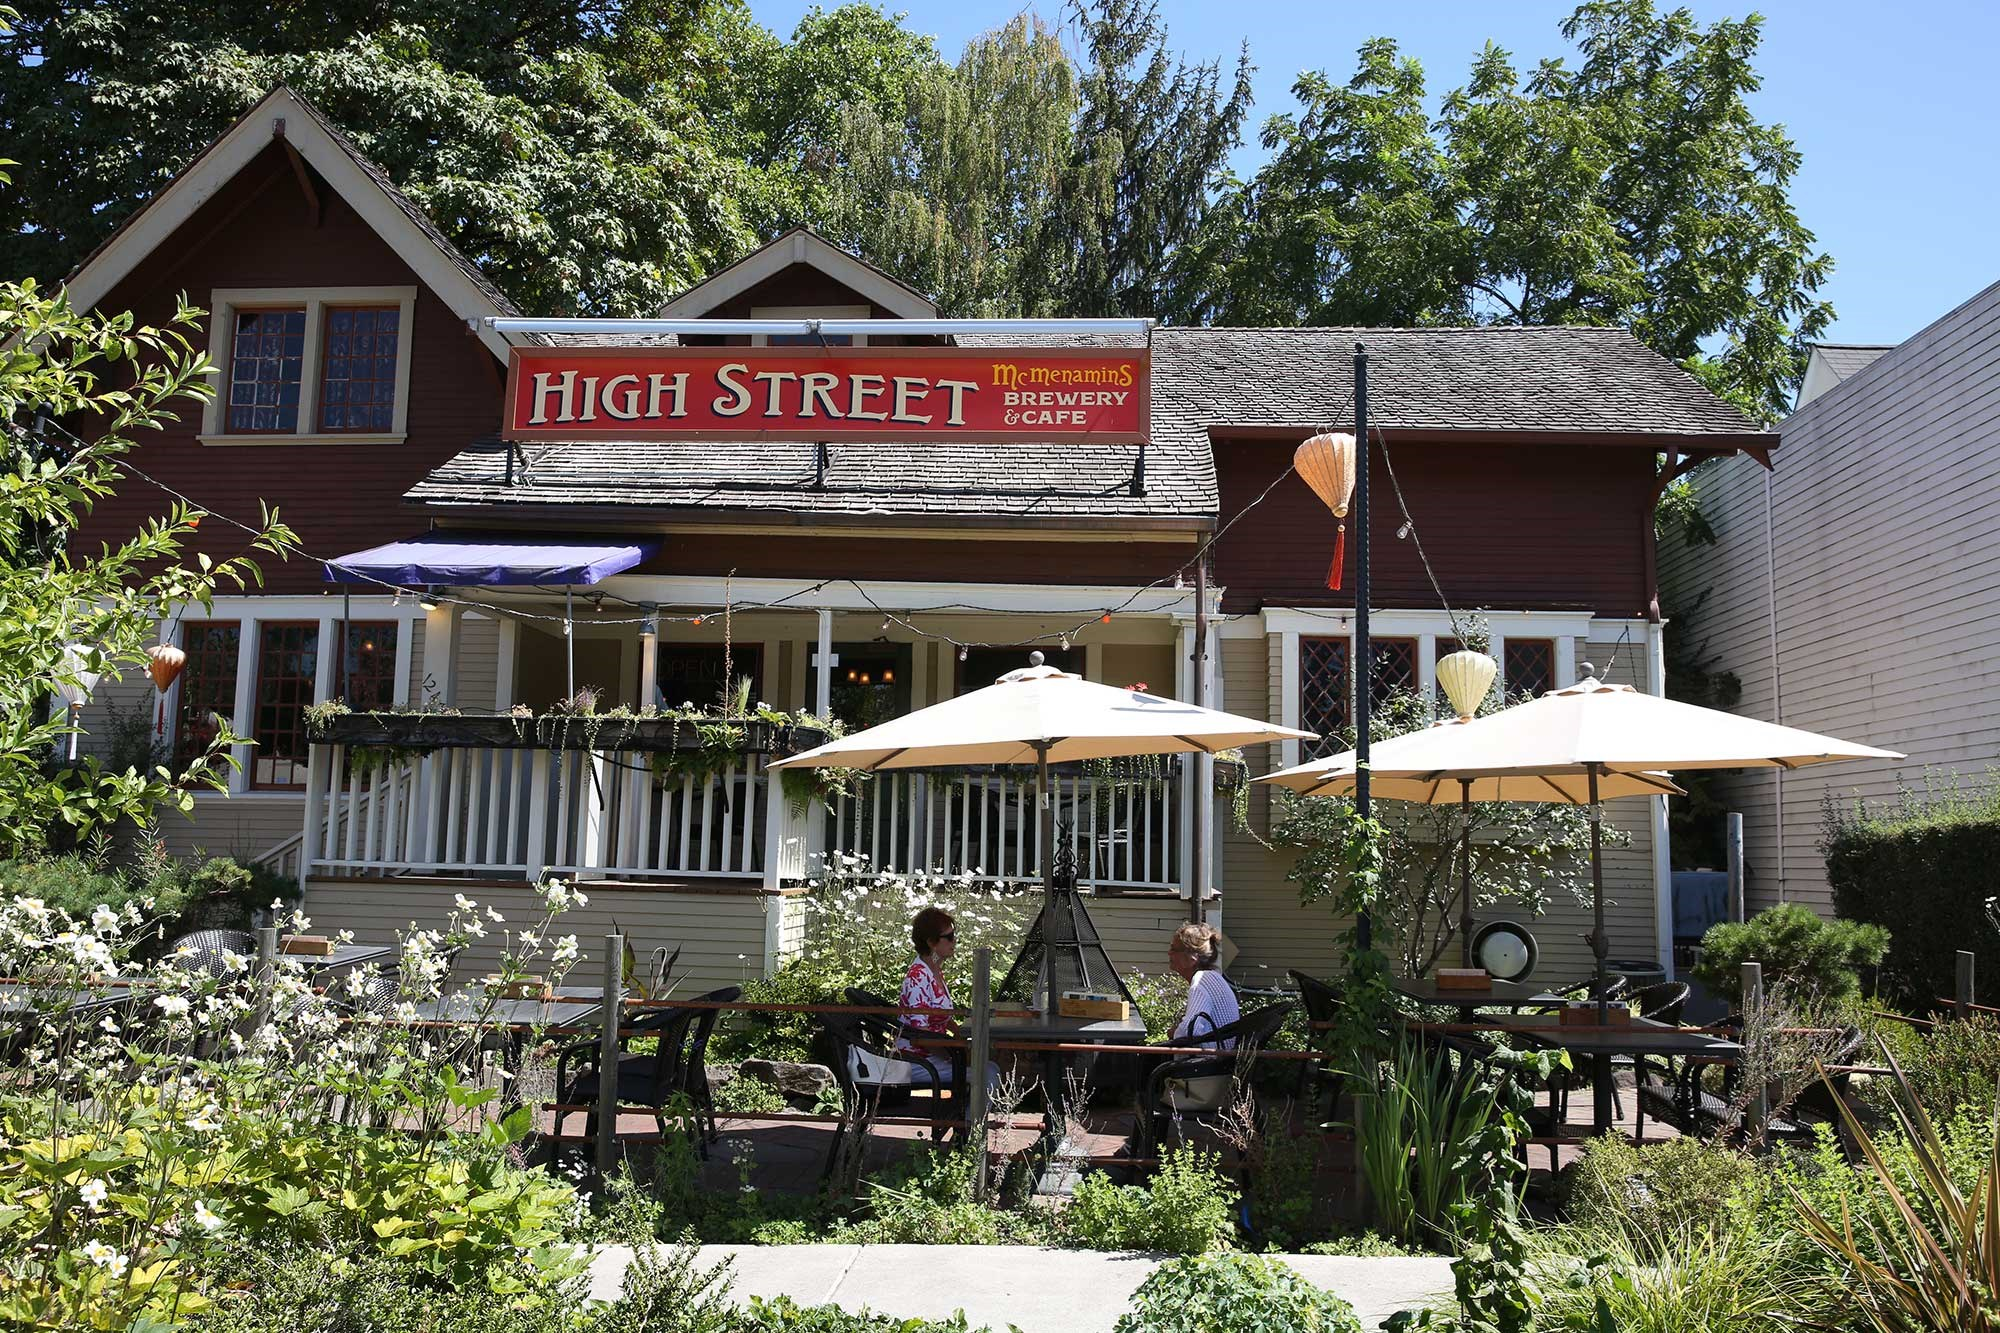 McMenamins-Brewery-Cafe High street Terrace Eugene, OR